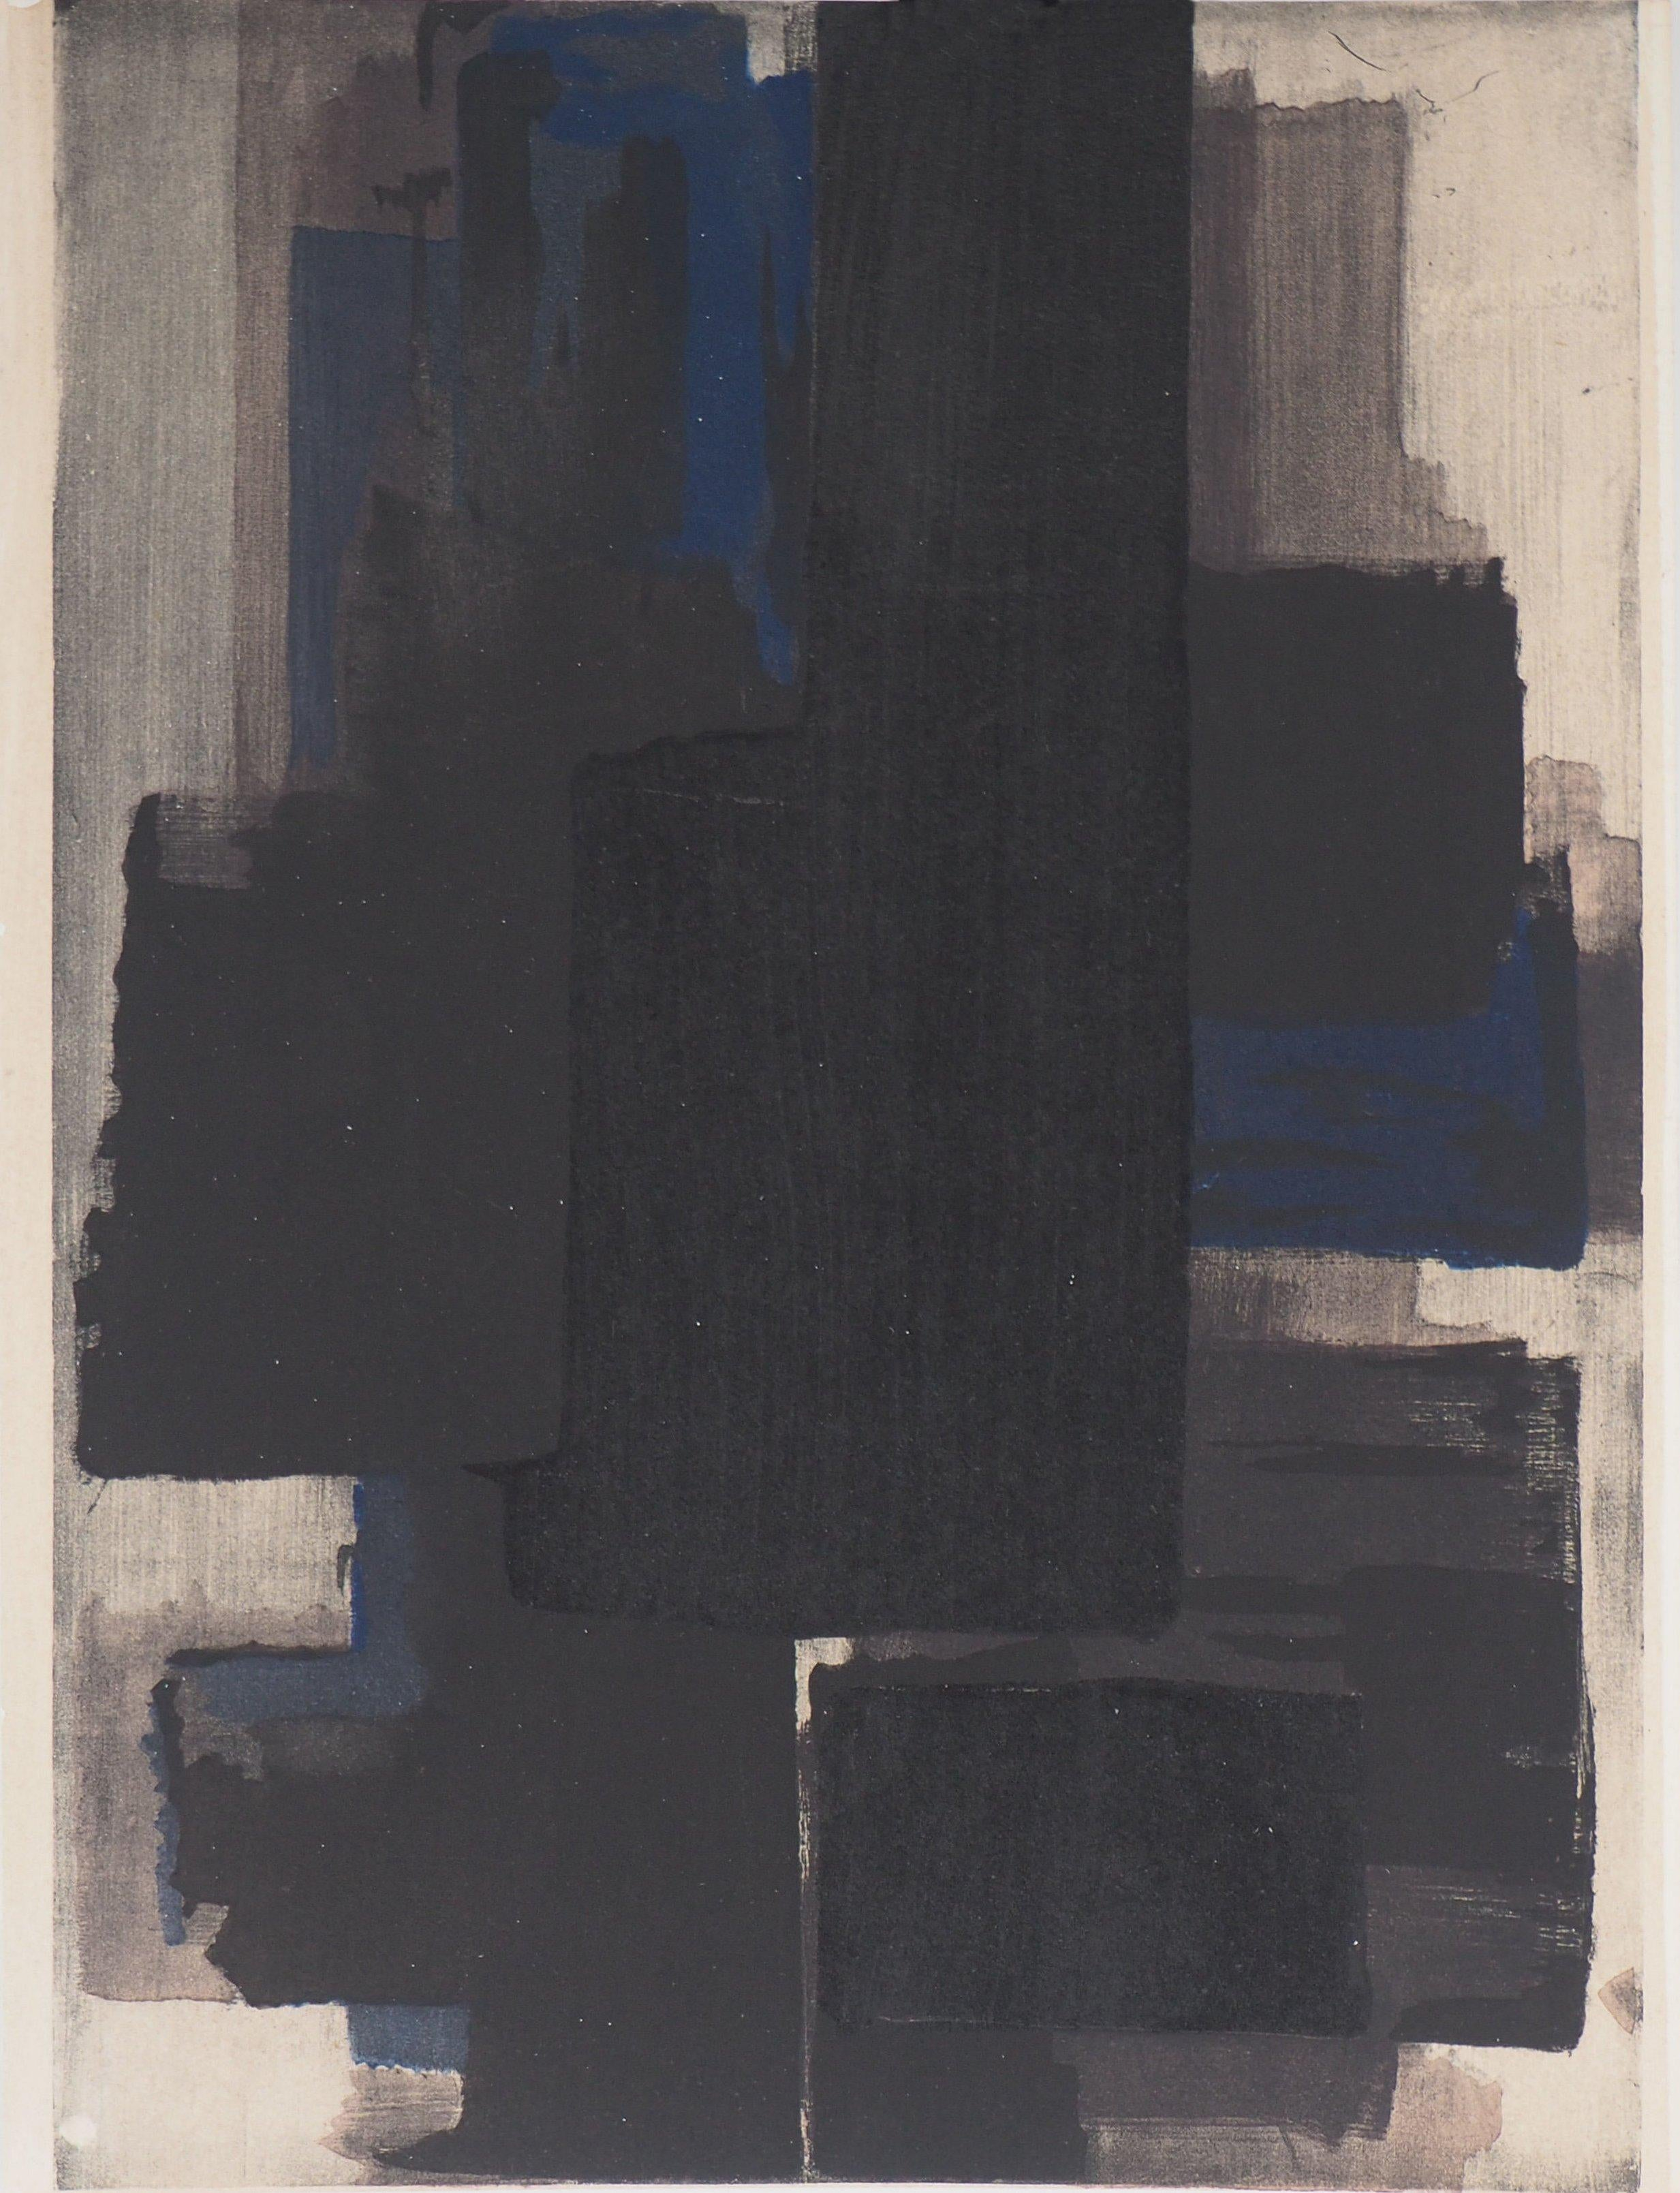 Composition in blue and black - Lithograph  and stencil, 1956